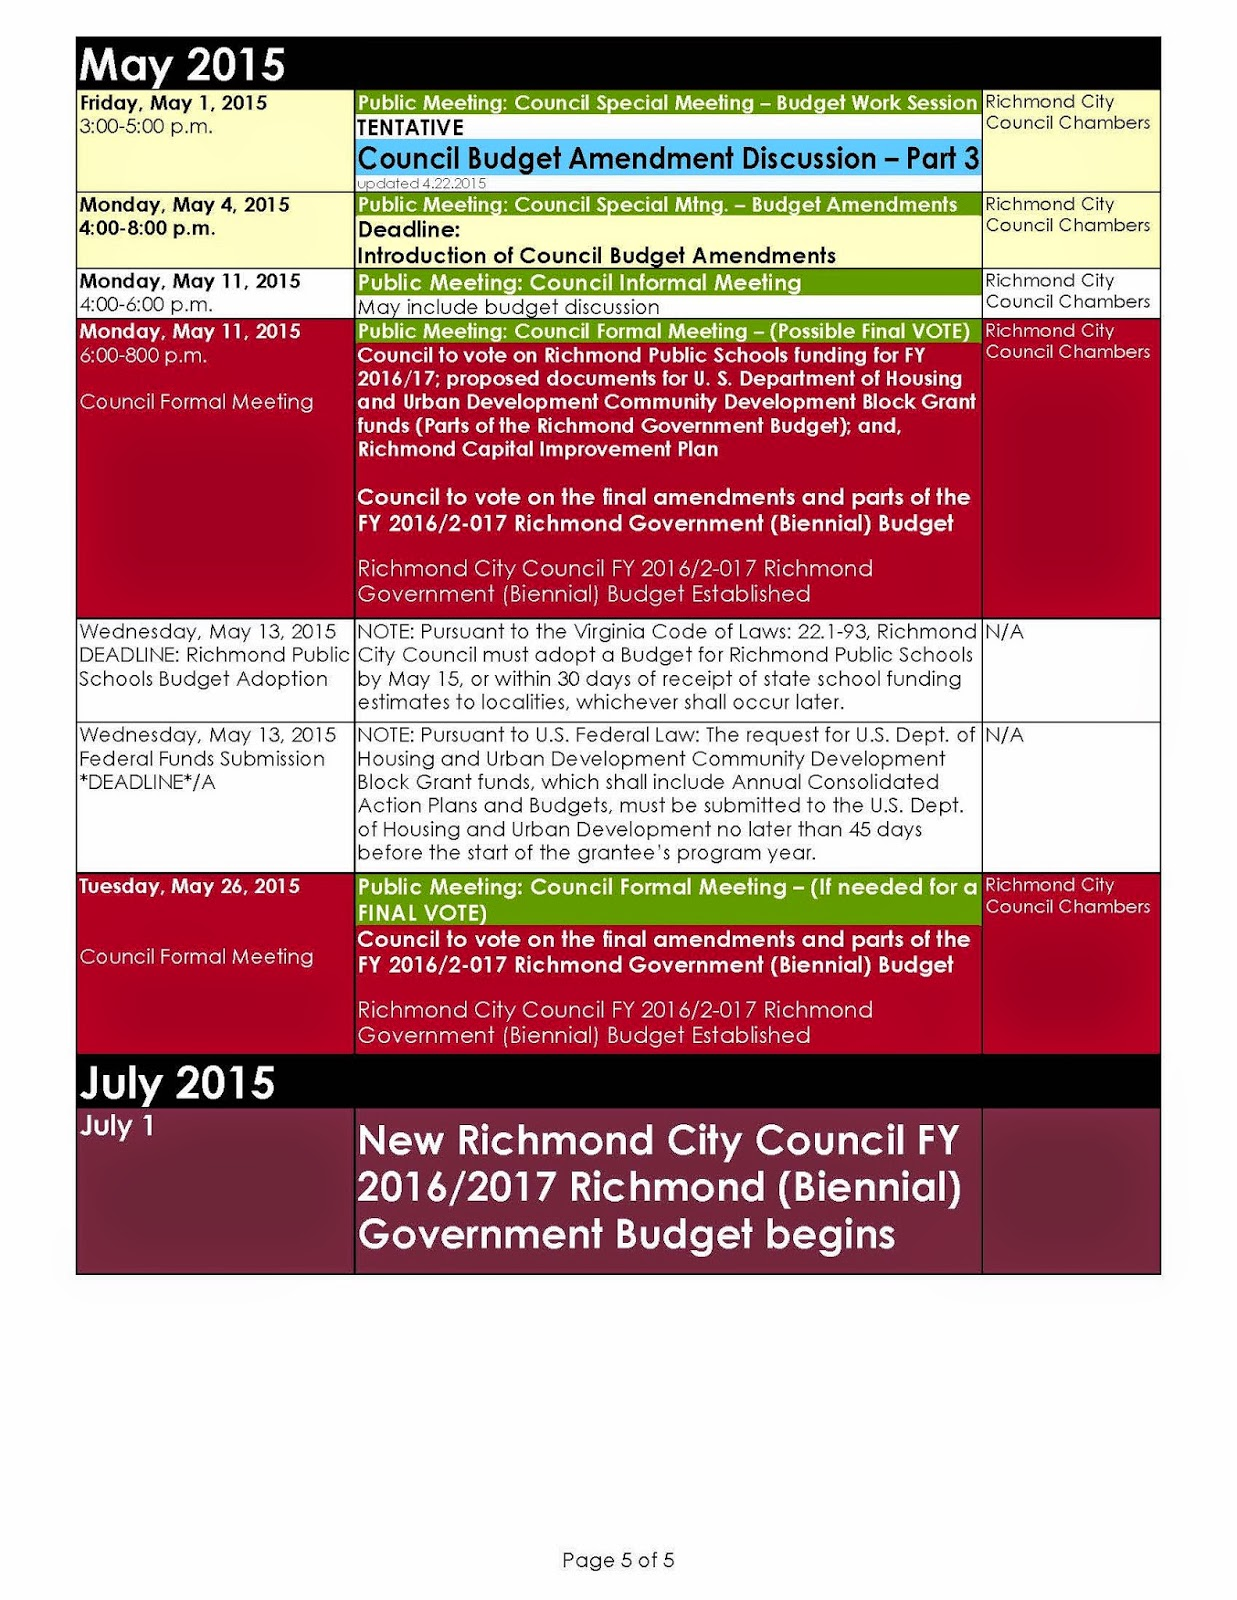 Council Budget Review Schedule FY 2016 - Page 5